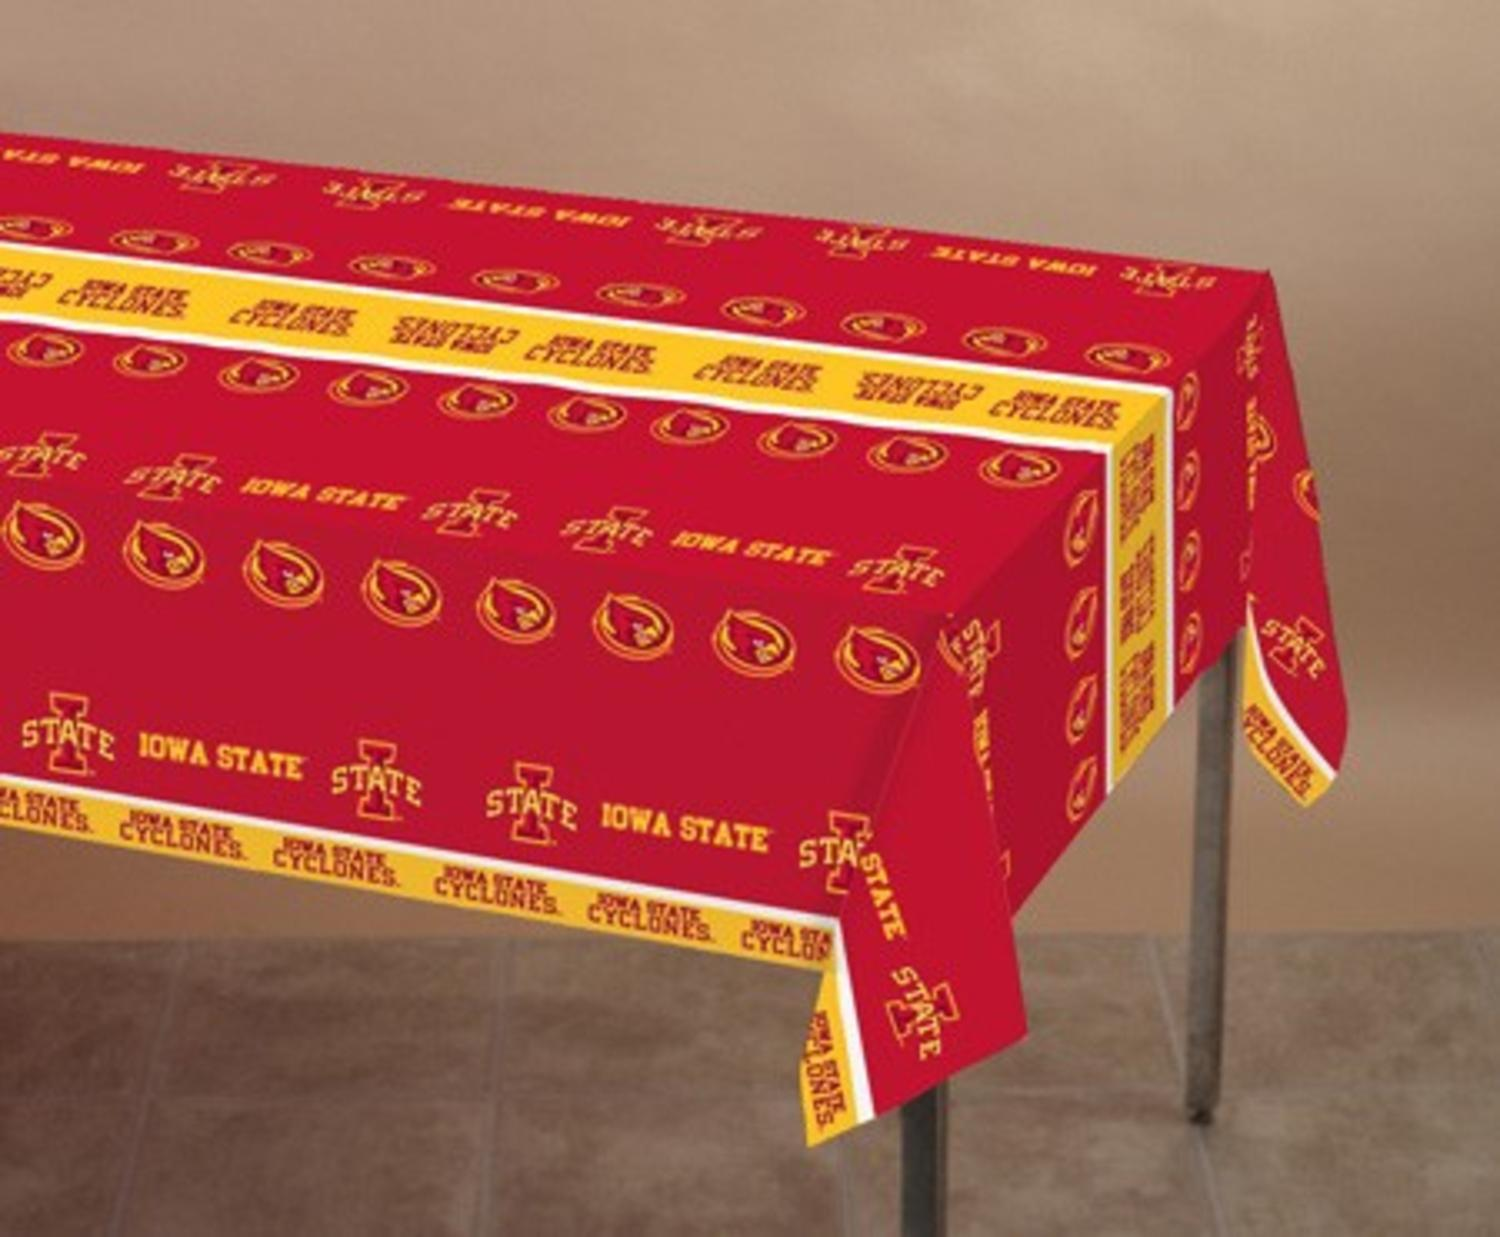 "Pack of 12 NCAA Iowa State Cyclones Tailgating Banquet Tablecloths 54"" x 108"" by Party Central"